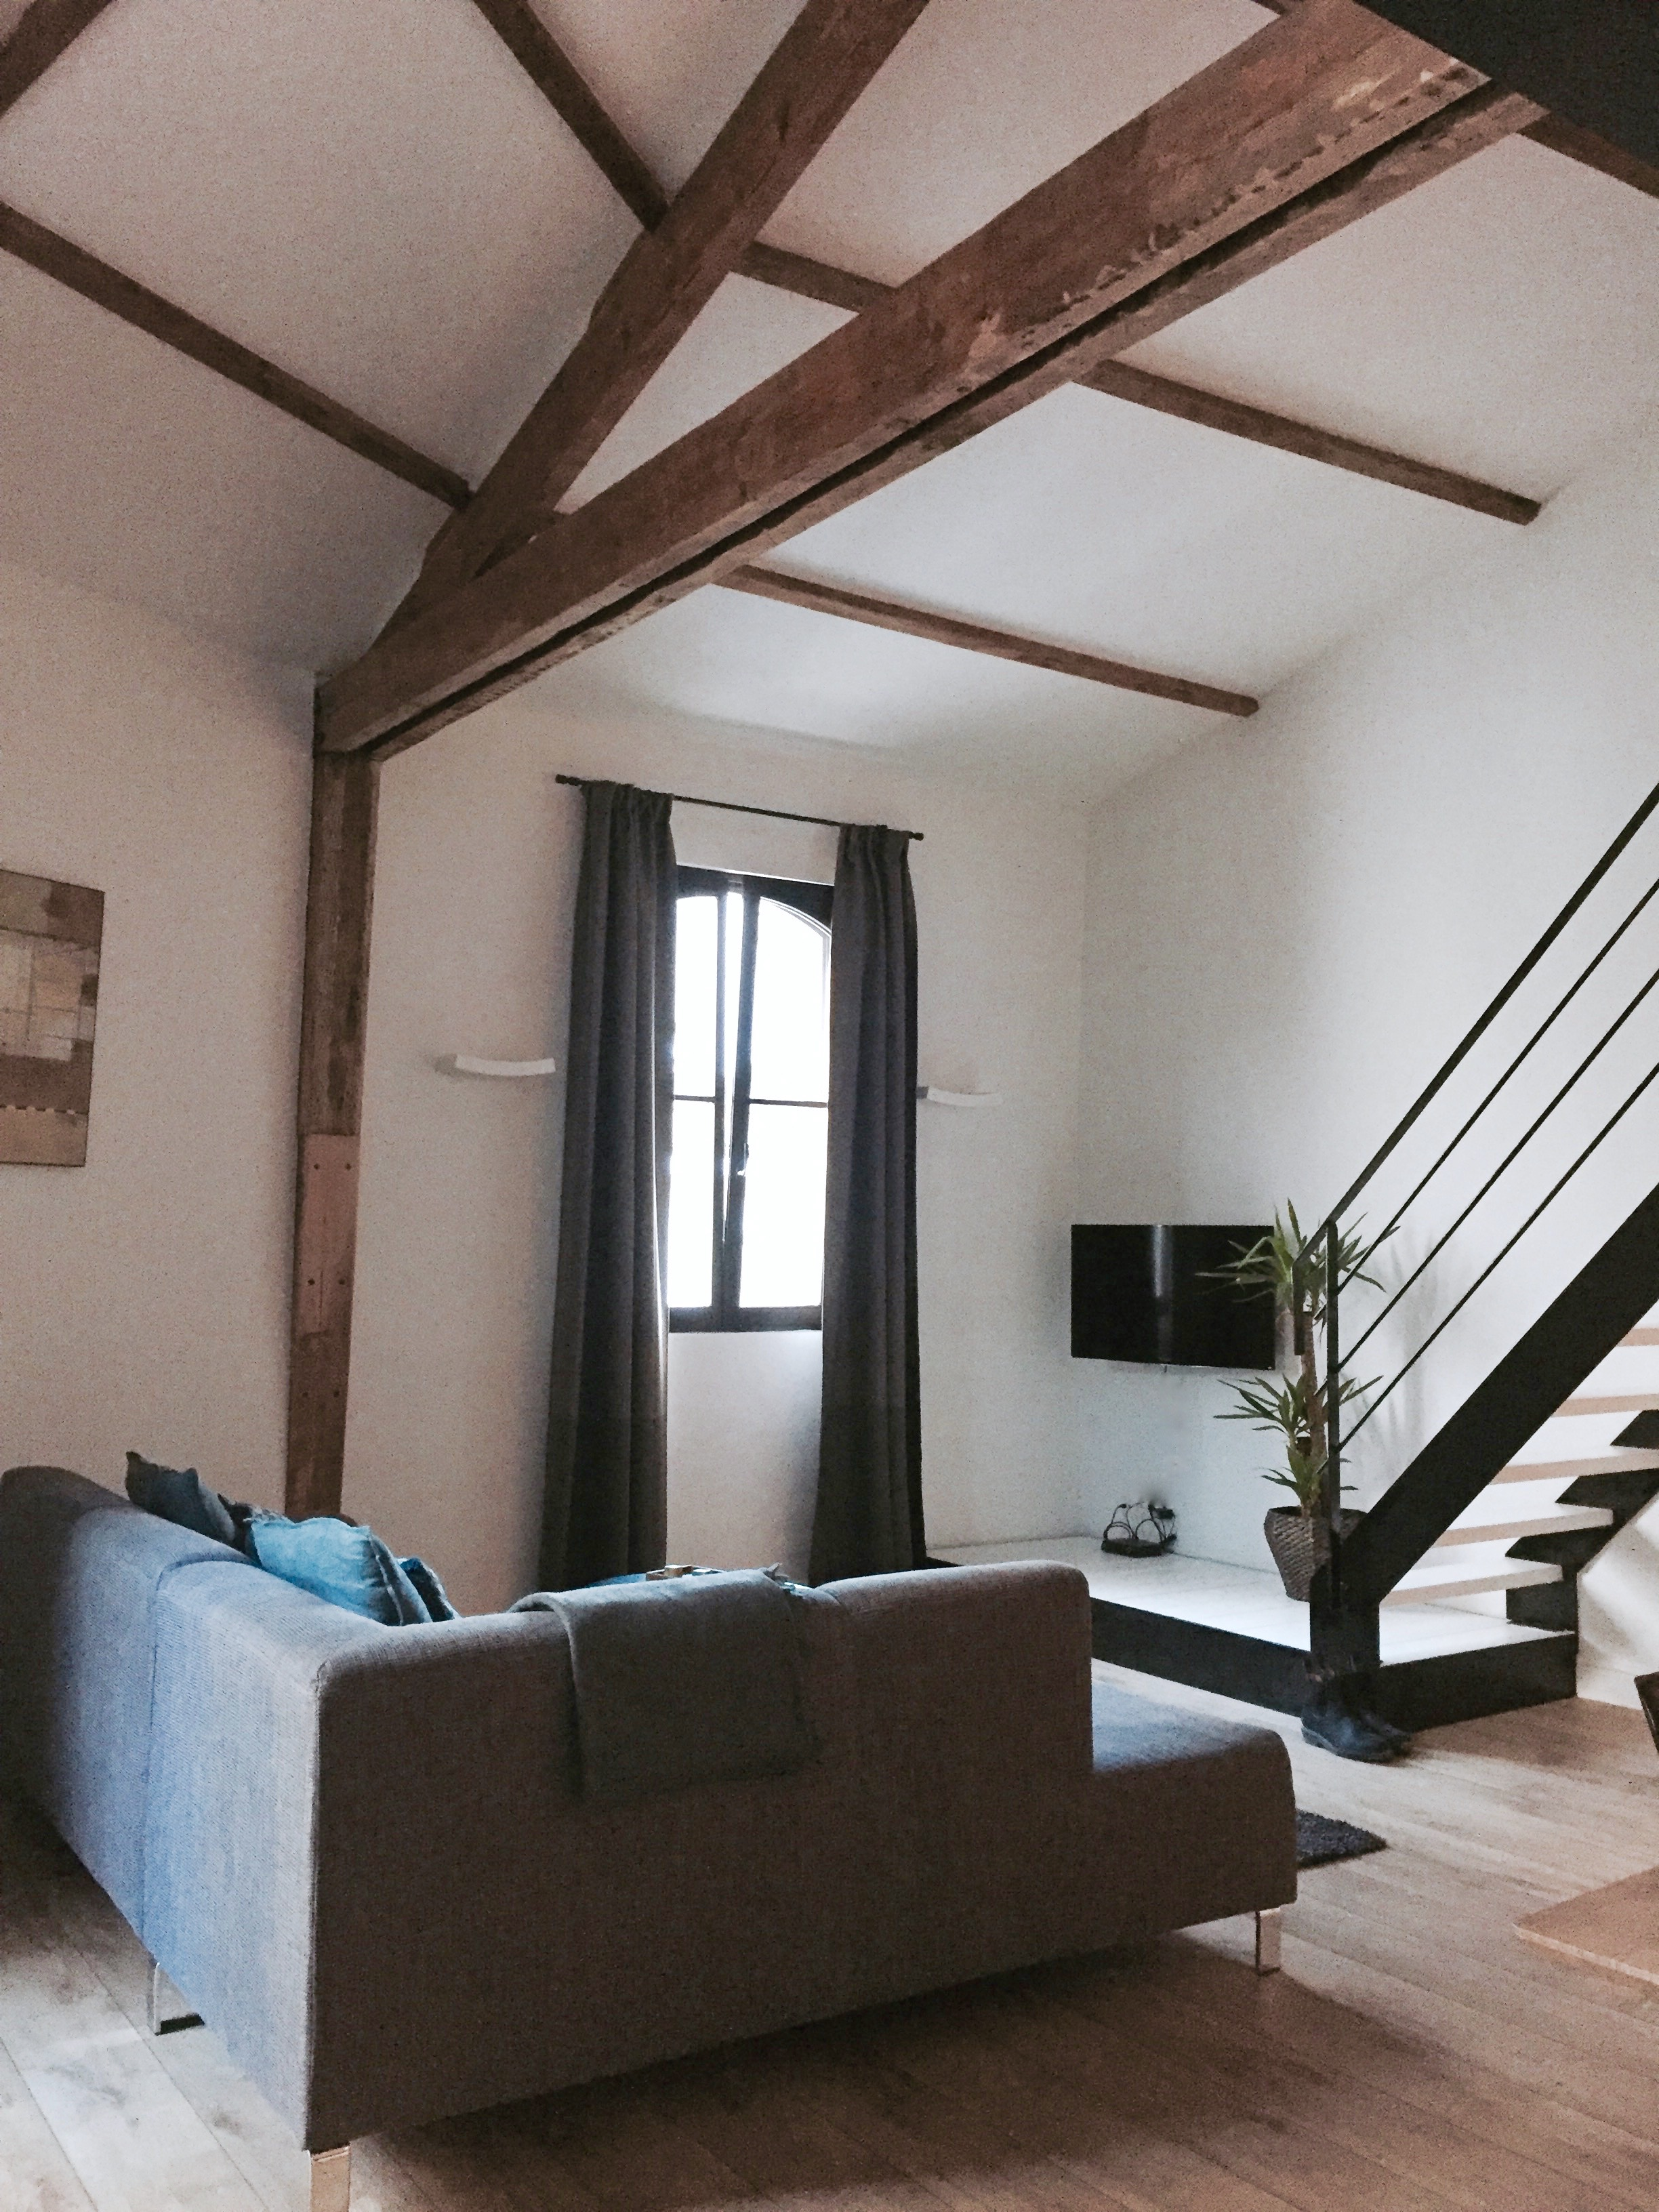 This place had me at the massively high ceilings and the original beams. I also felt it had a suitably Antwerpian Vincent Van Duysen vibe.